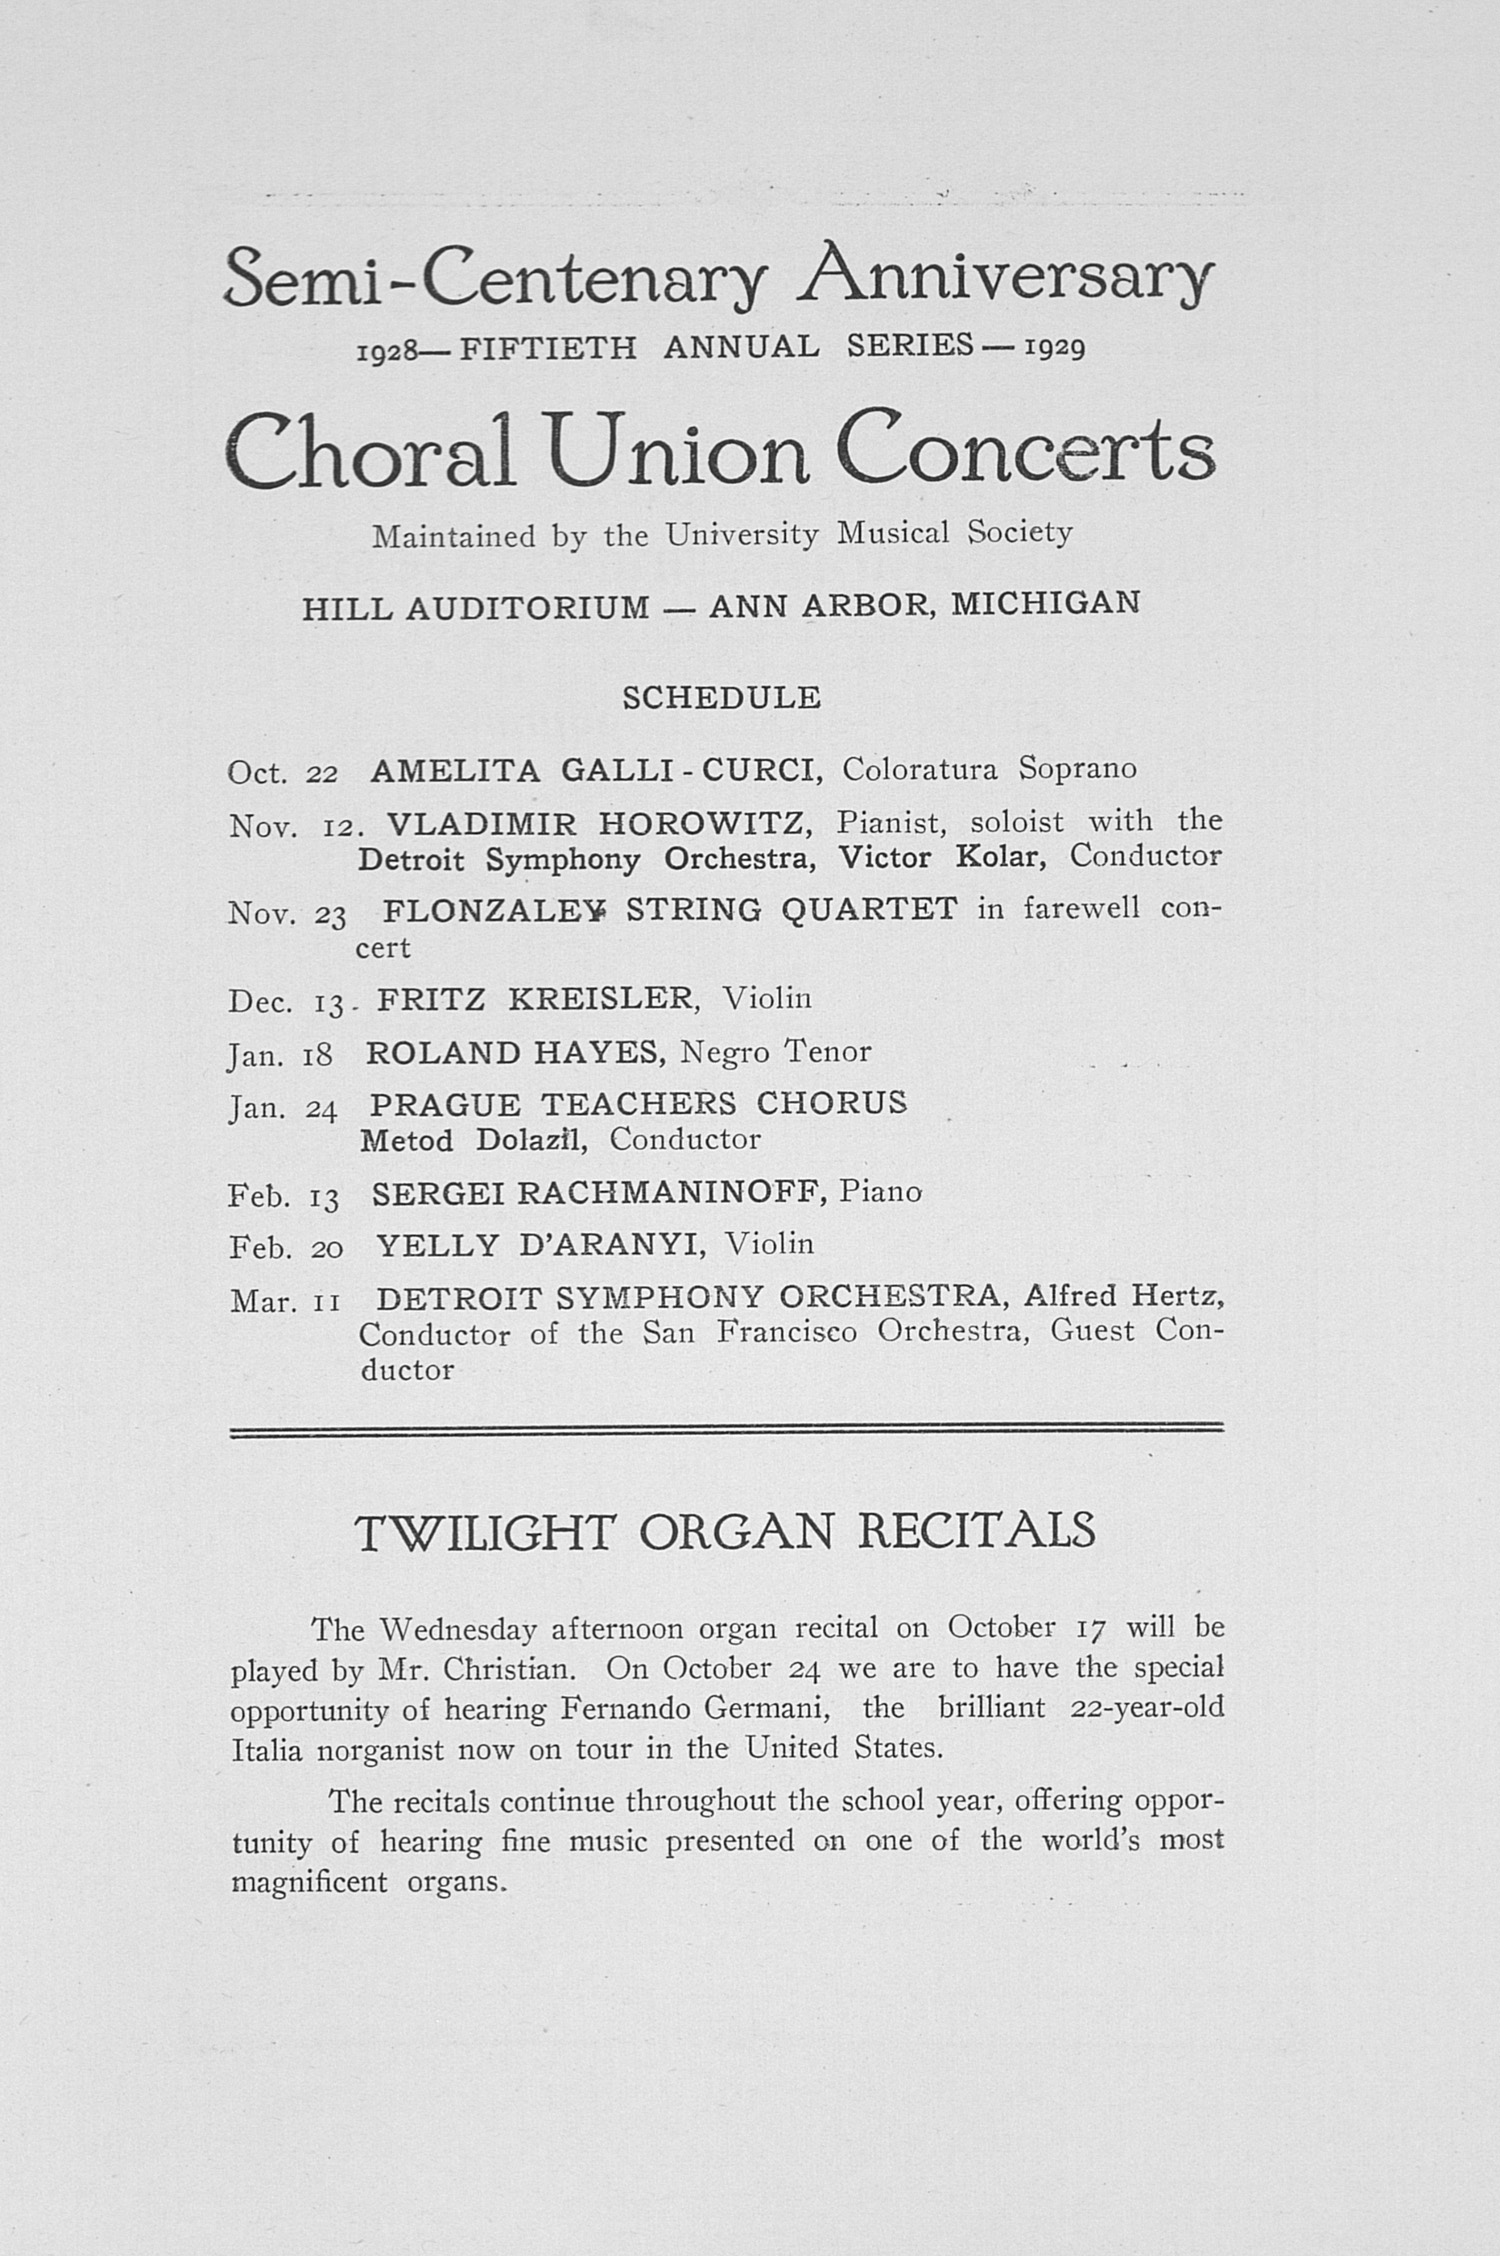 UMS Concert Program, October 10, 1928: Fiftieth Annual Choral Union Concert Series -- Rosa Ponselle image